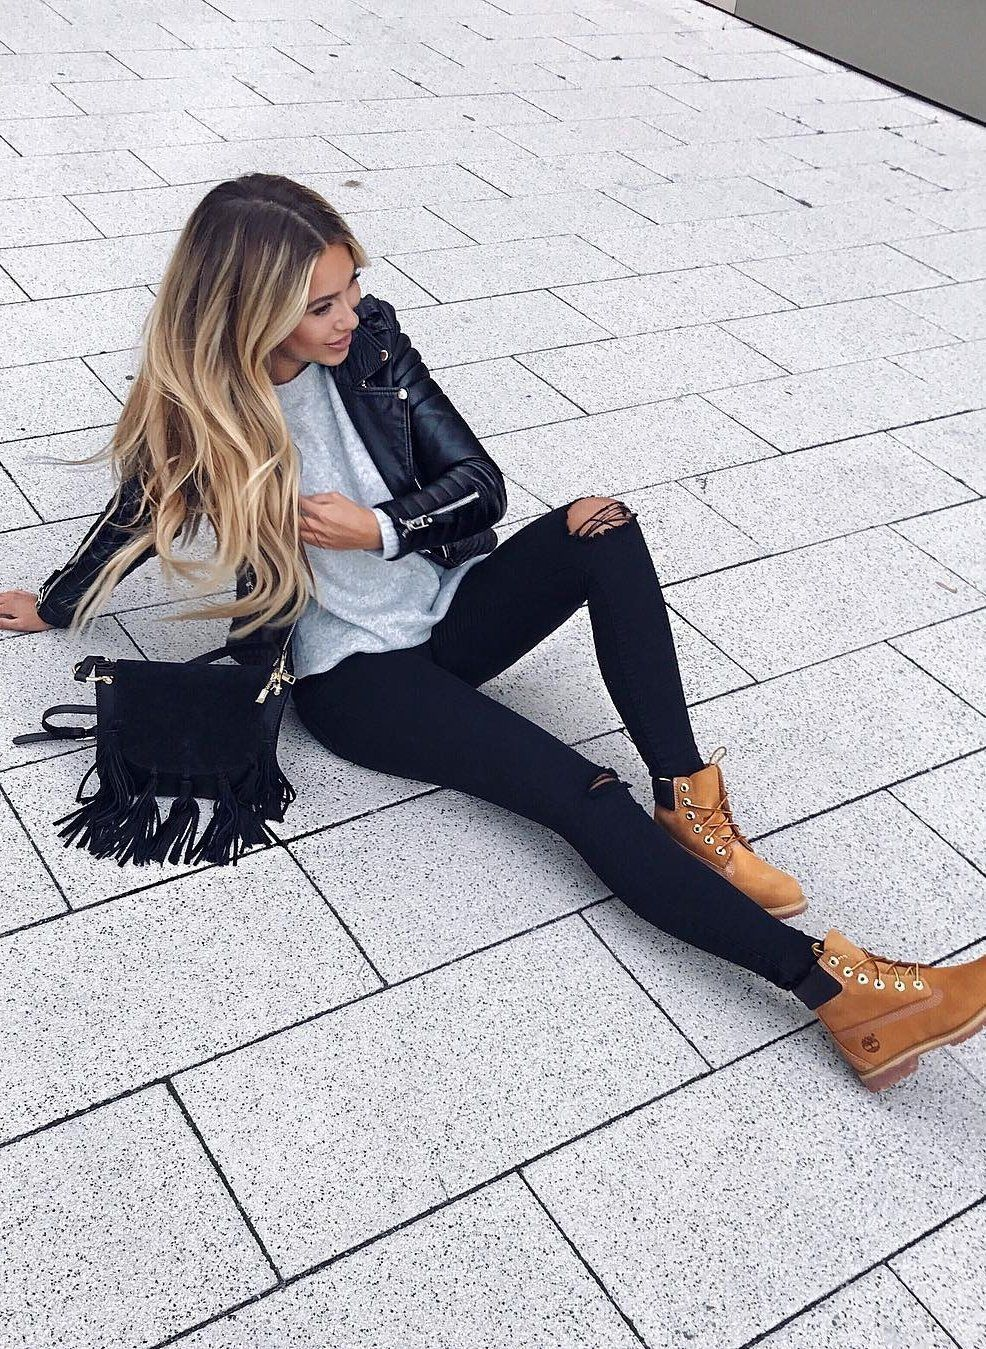 89 Beste 2019 Herbst Outfits Die Sie Kopieren Mussen Fashion Fall Outfits 2017 Fashion Outfits